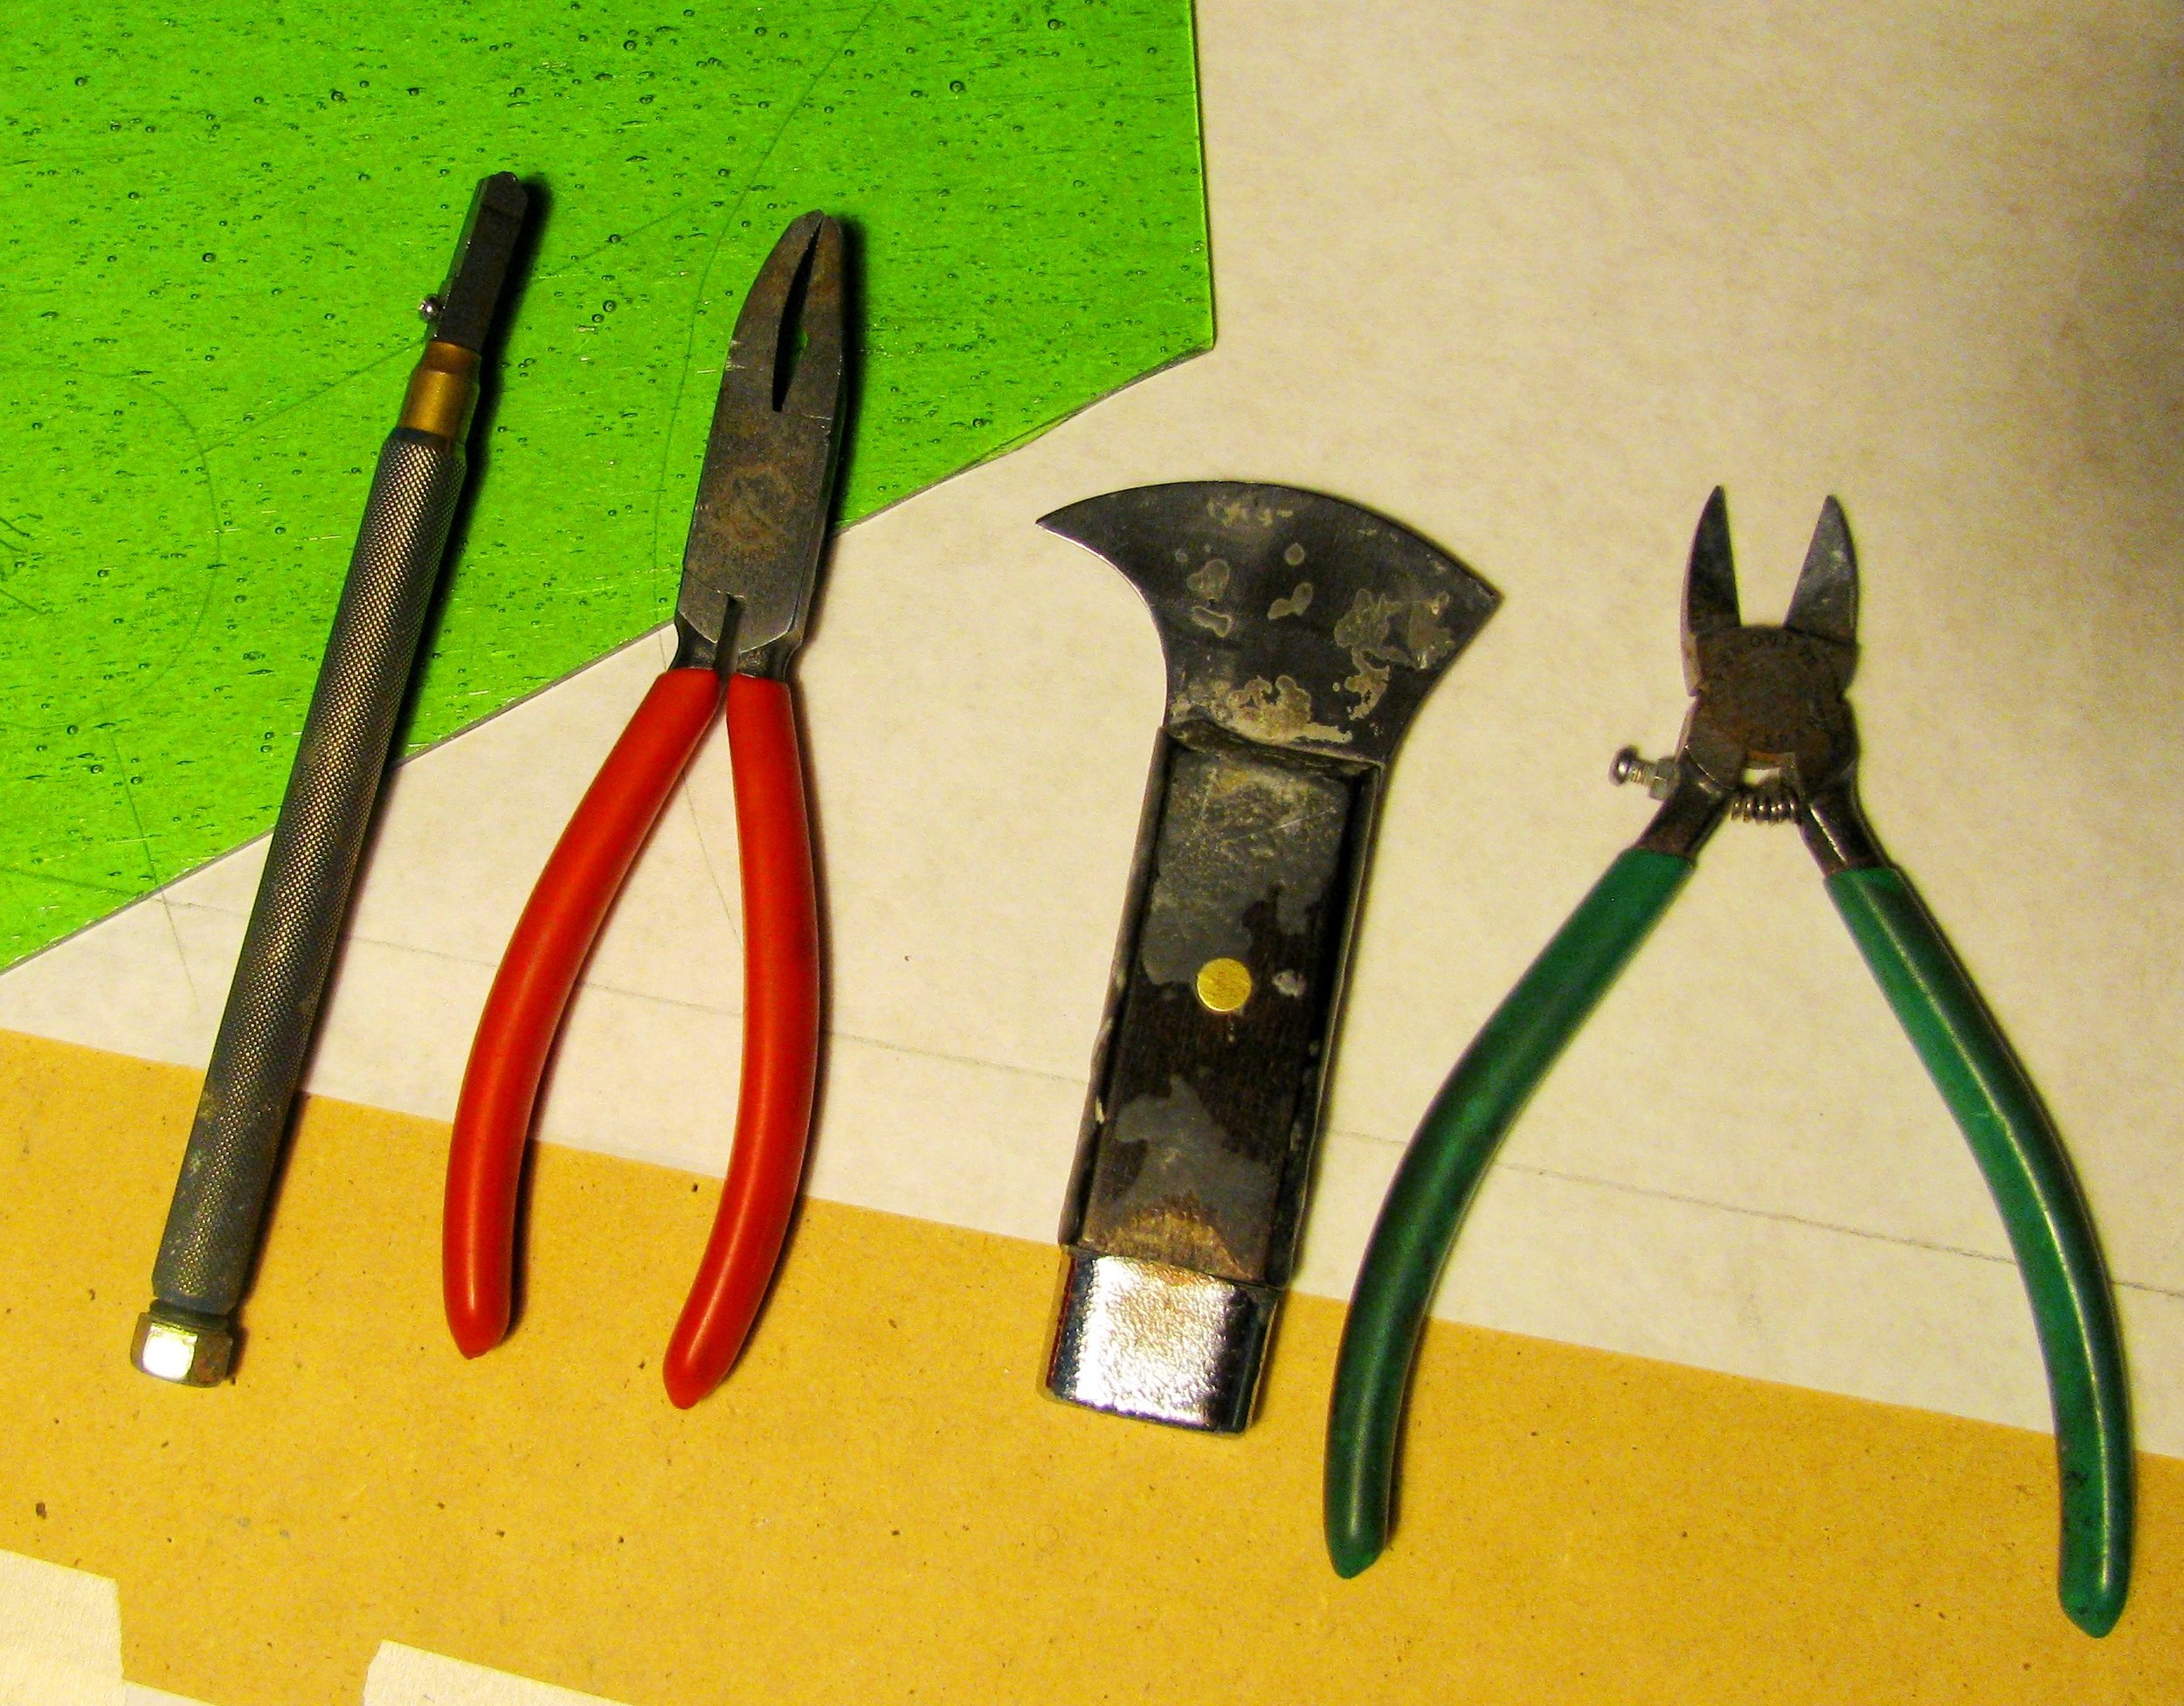 Tools for building panels